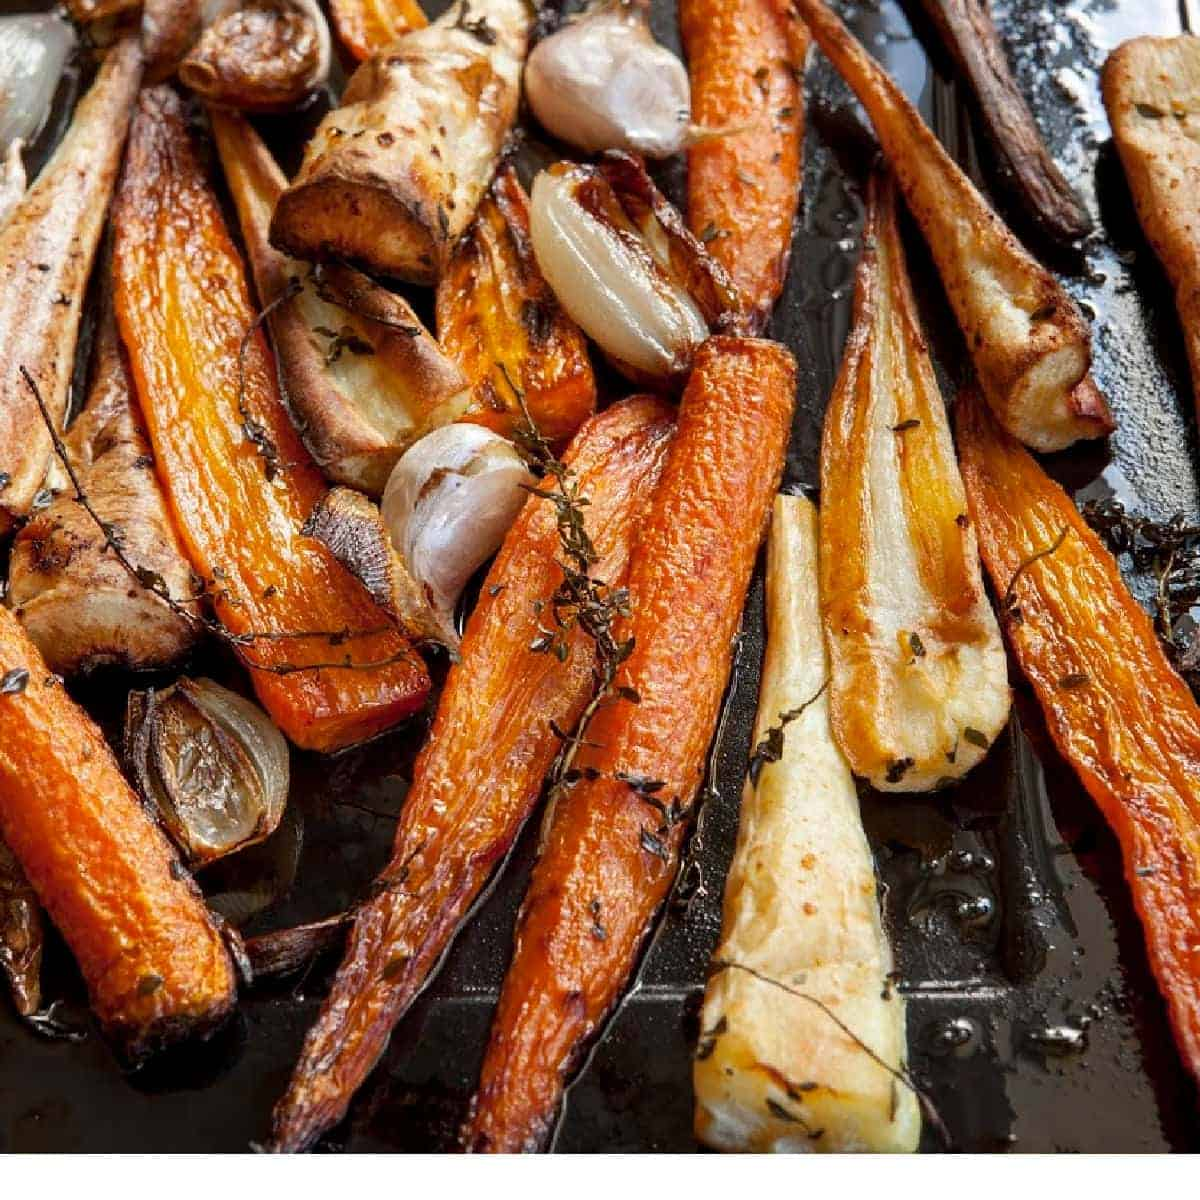 roasted carrots and parsnips with garlic